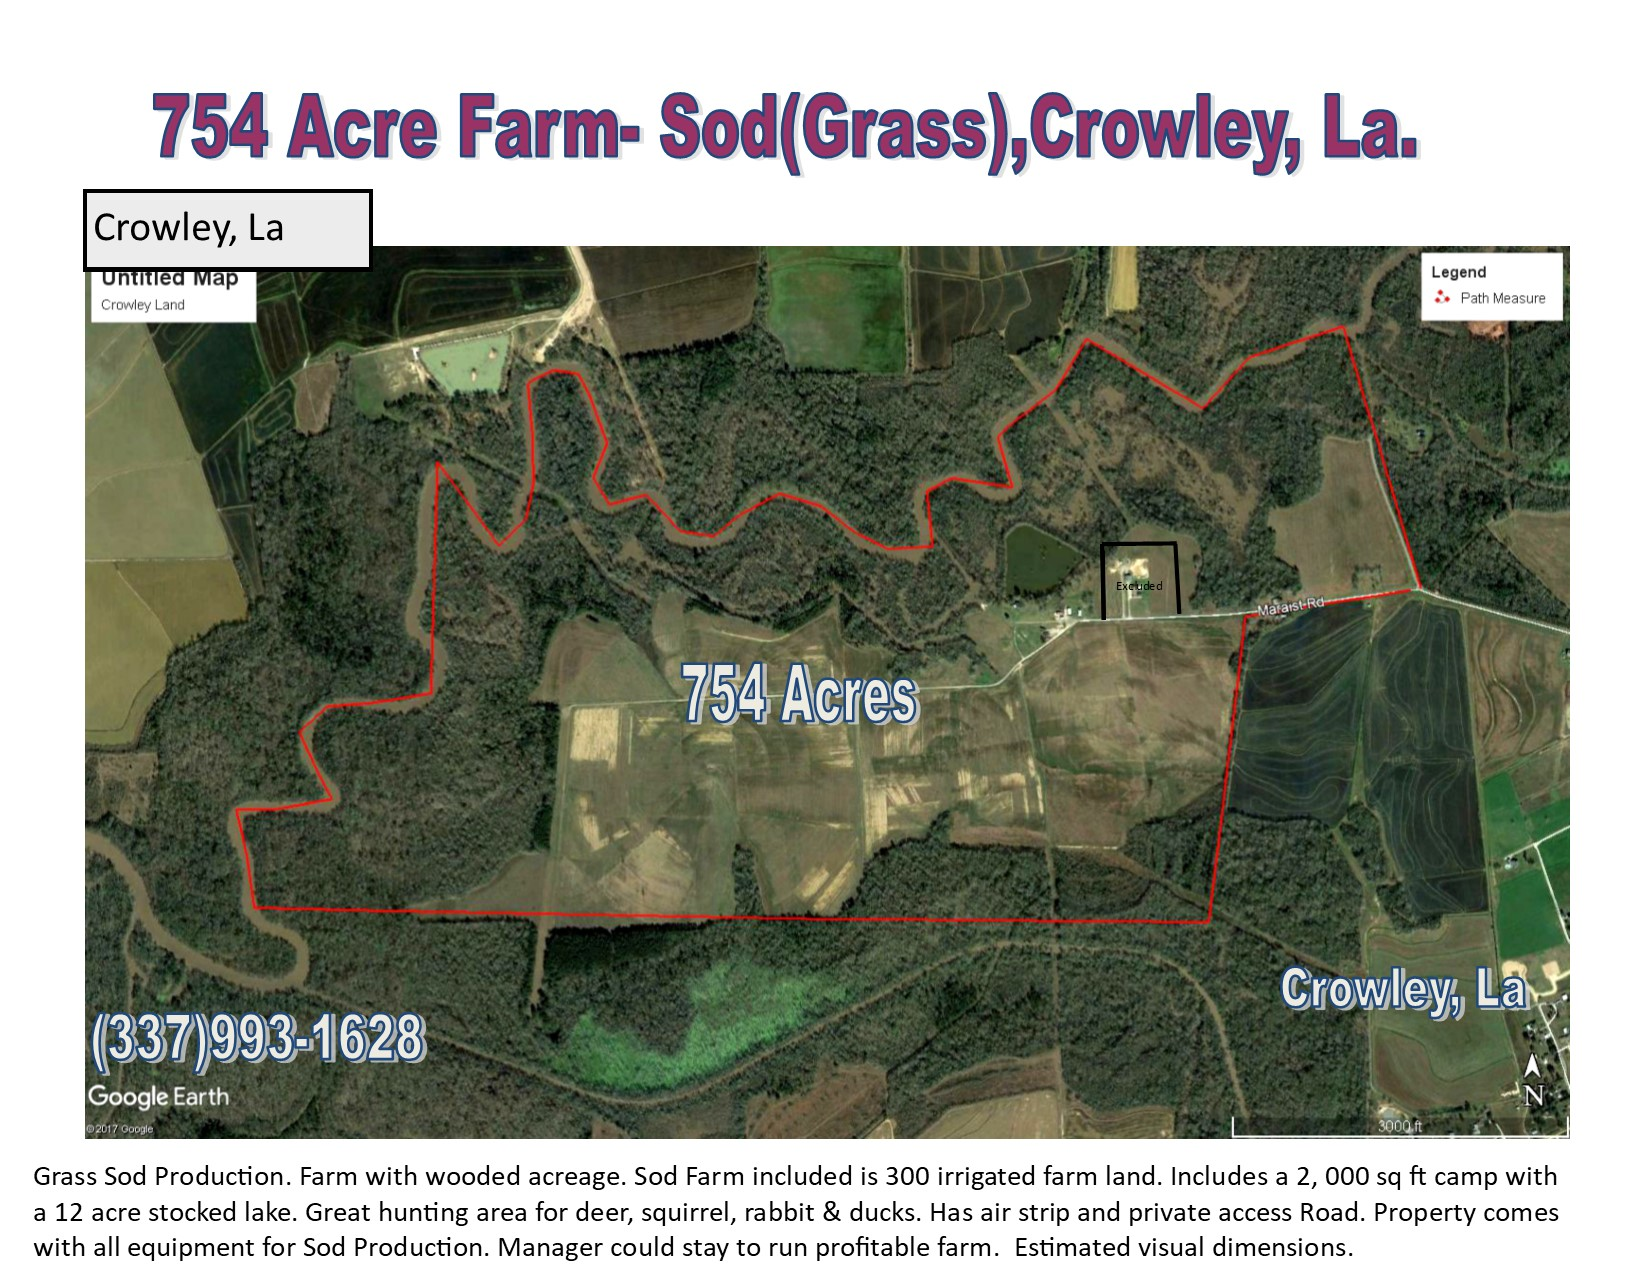 754 Acres of Prime Farm Land - Presently a Grass(Sod) FArm